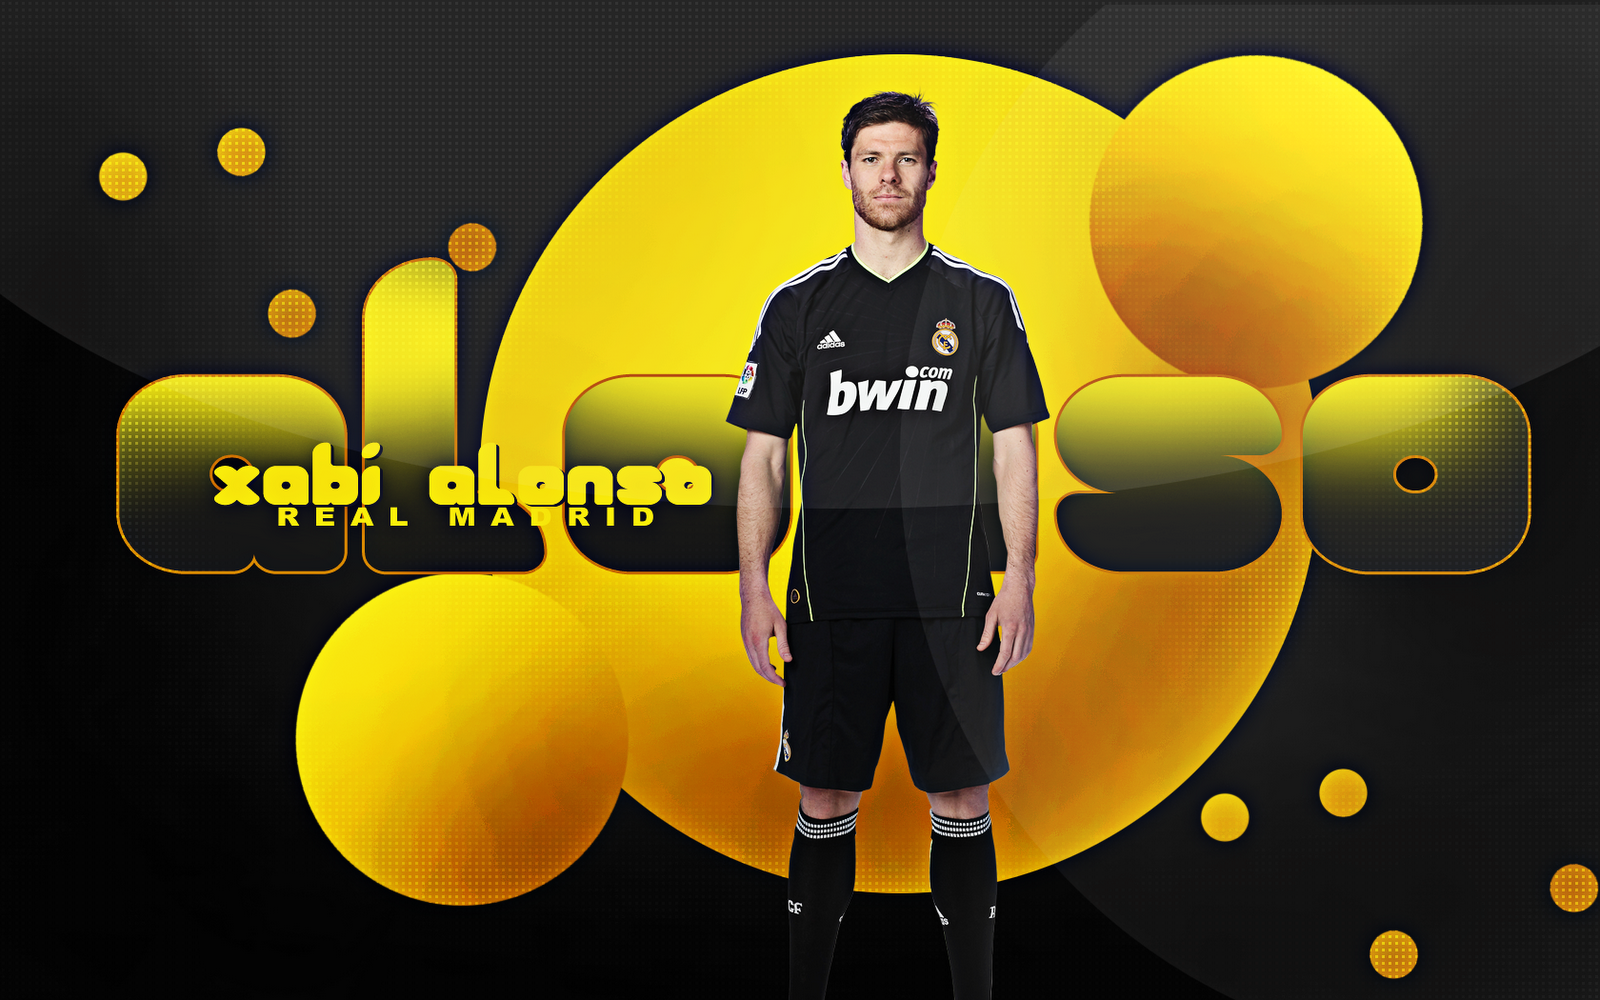 Xabi Alonso Wallpapers Images HD HD Wallpapers Backgrounds Photos 1600x1000